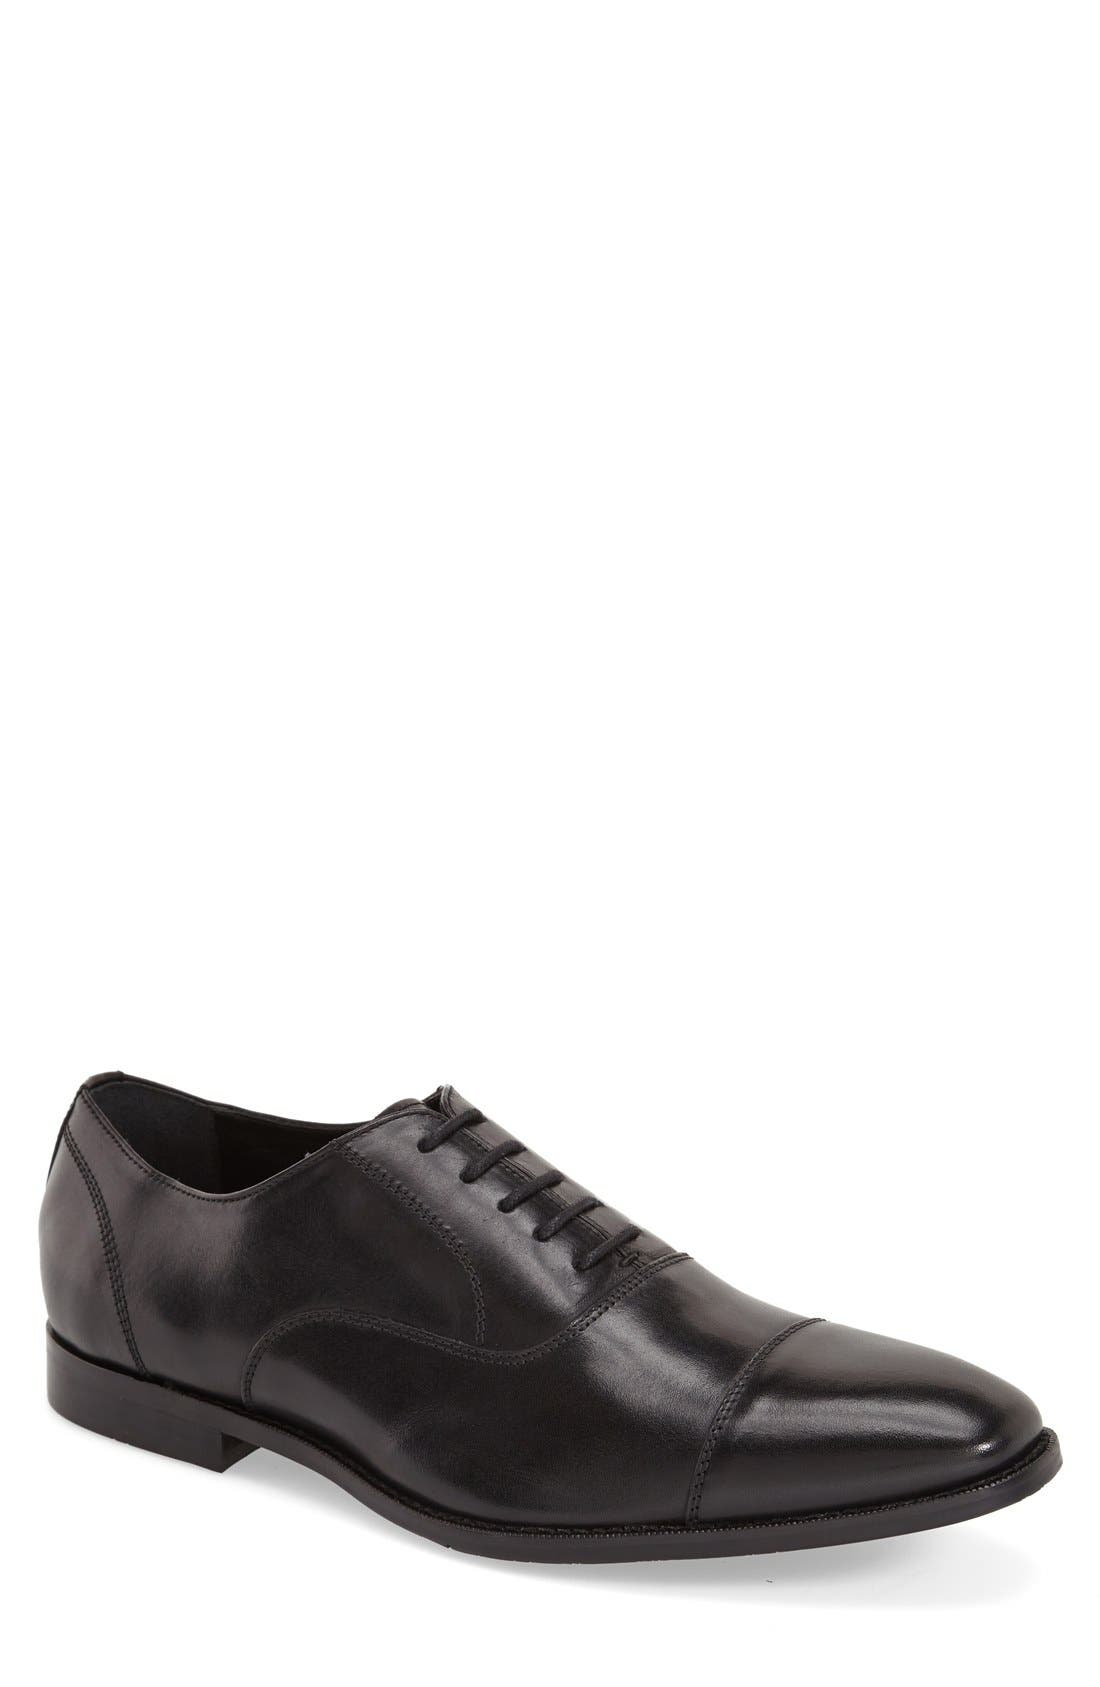 GORDON RUSH 'Dillon' Cap Toe Oxford